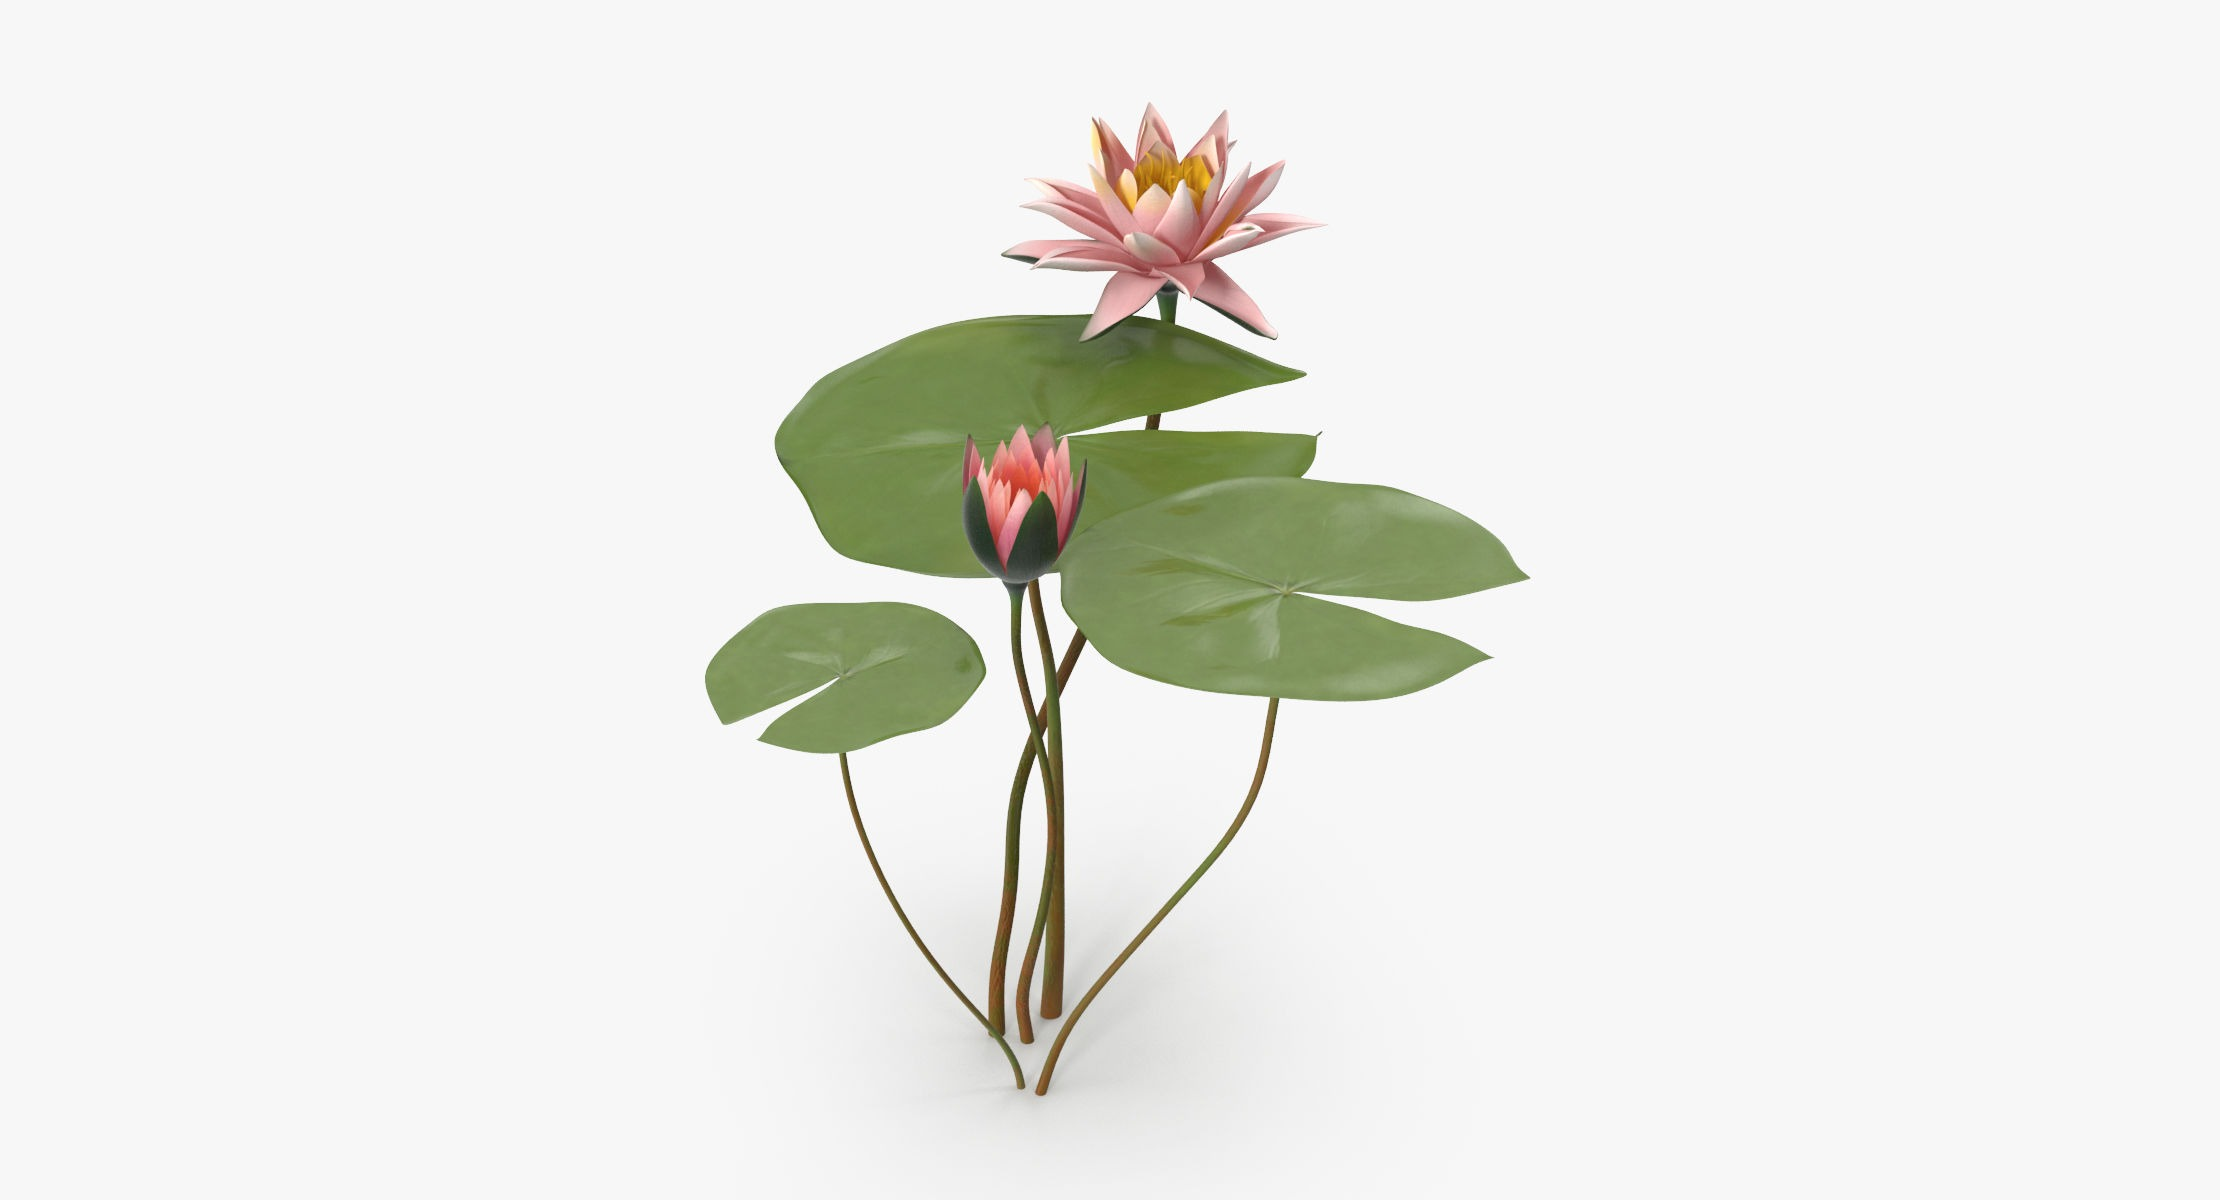 Water Lily 04 - reel 1